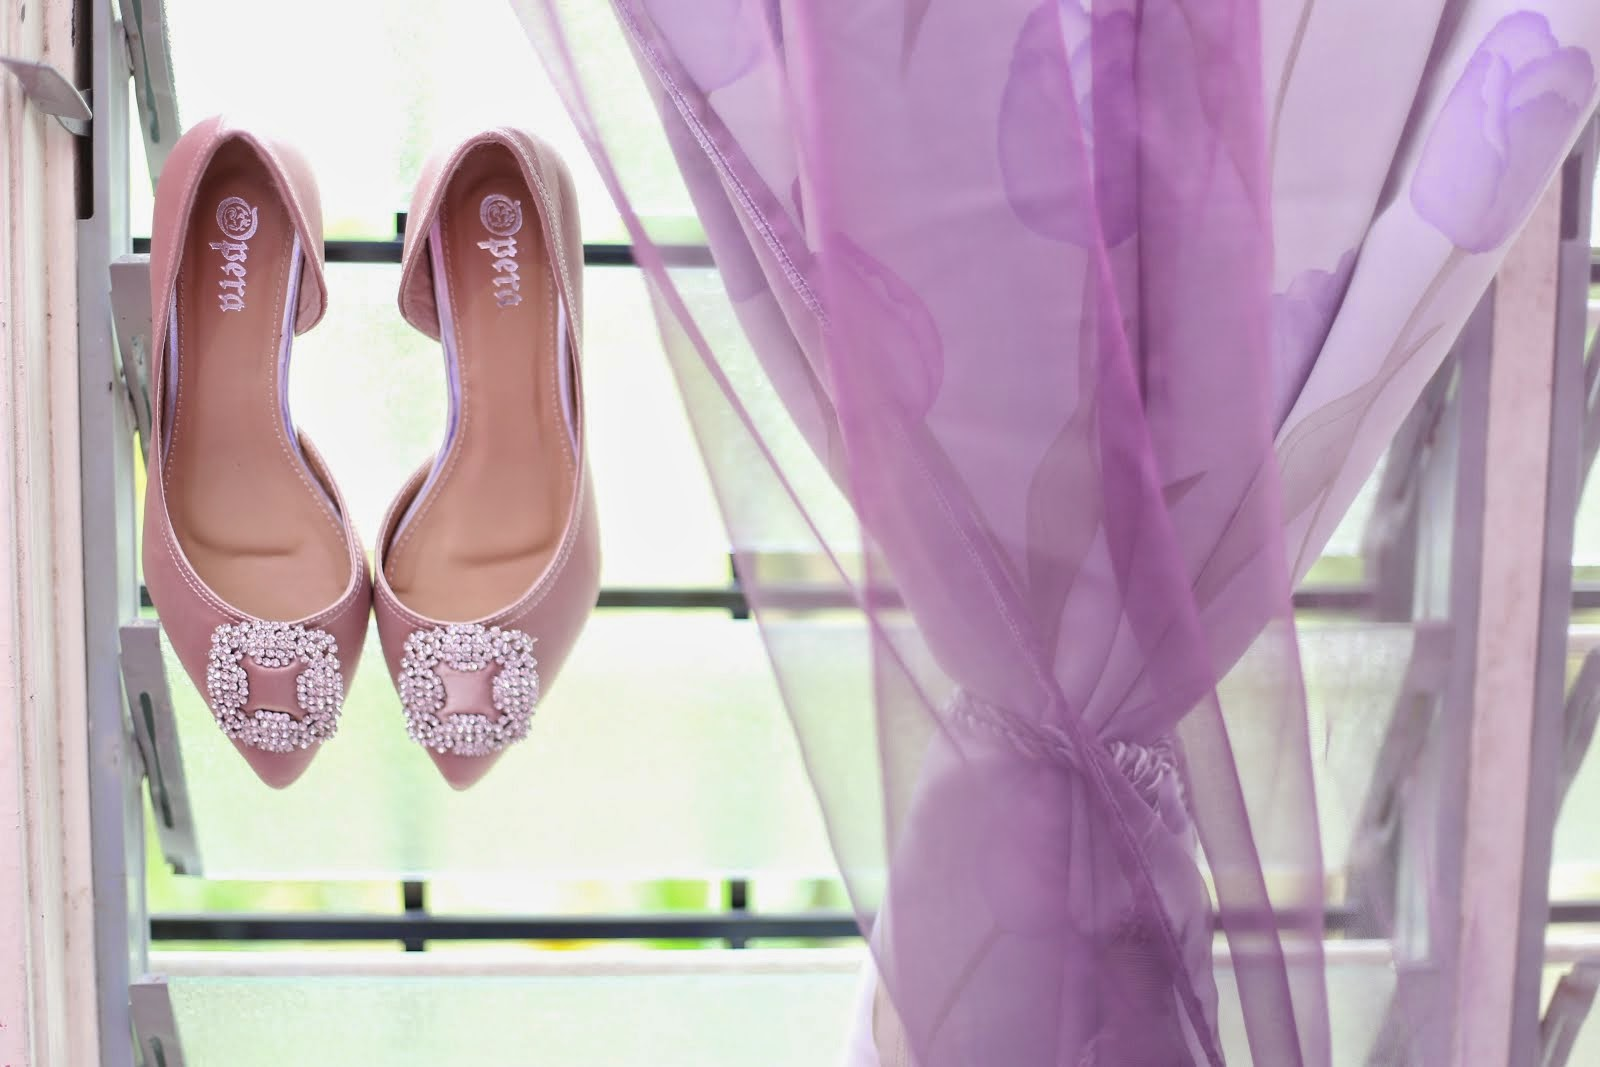 akad nikah's shoes,a gift from lovely dayah :)